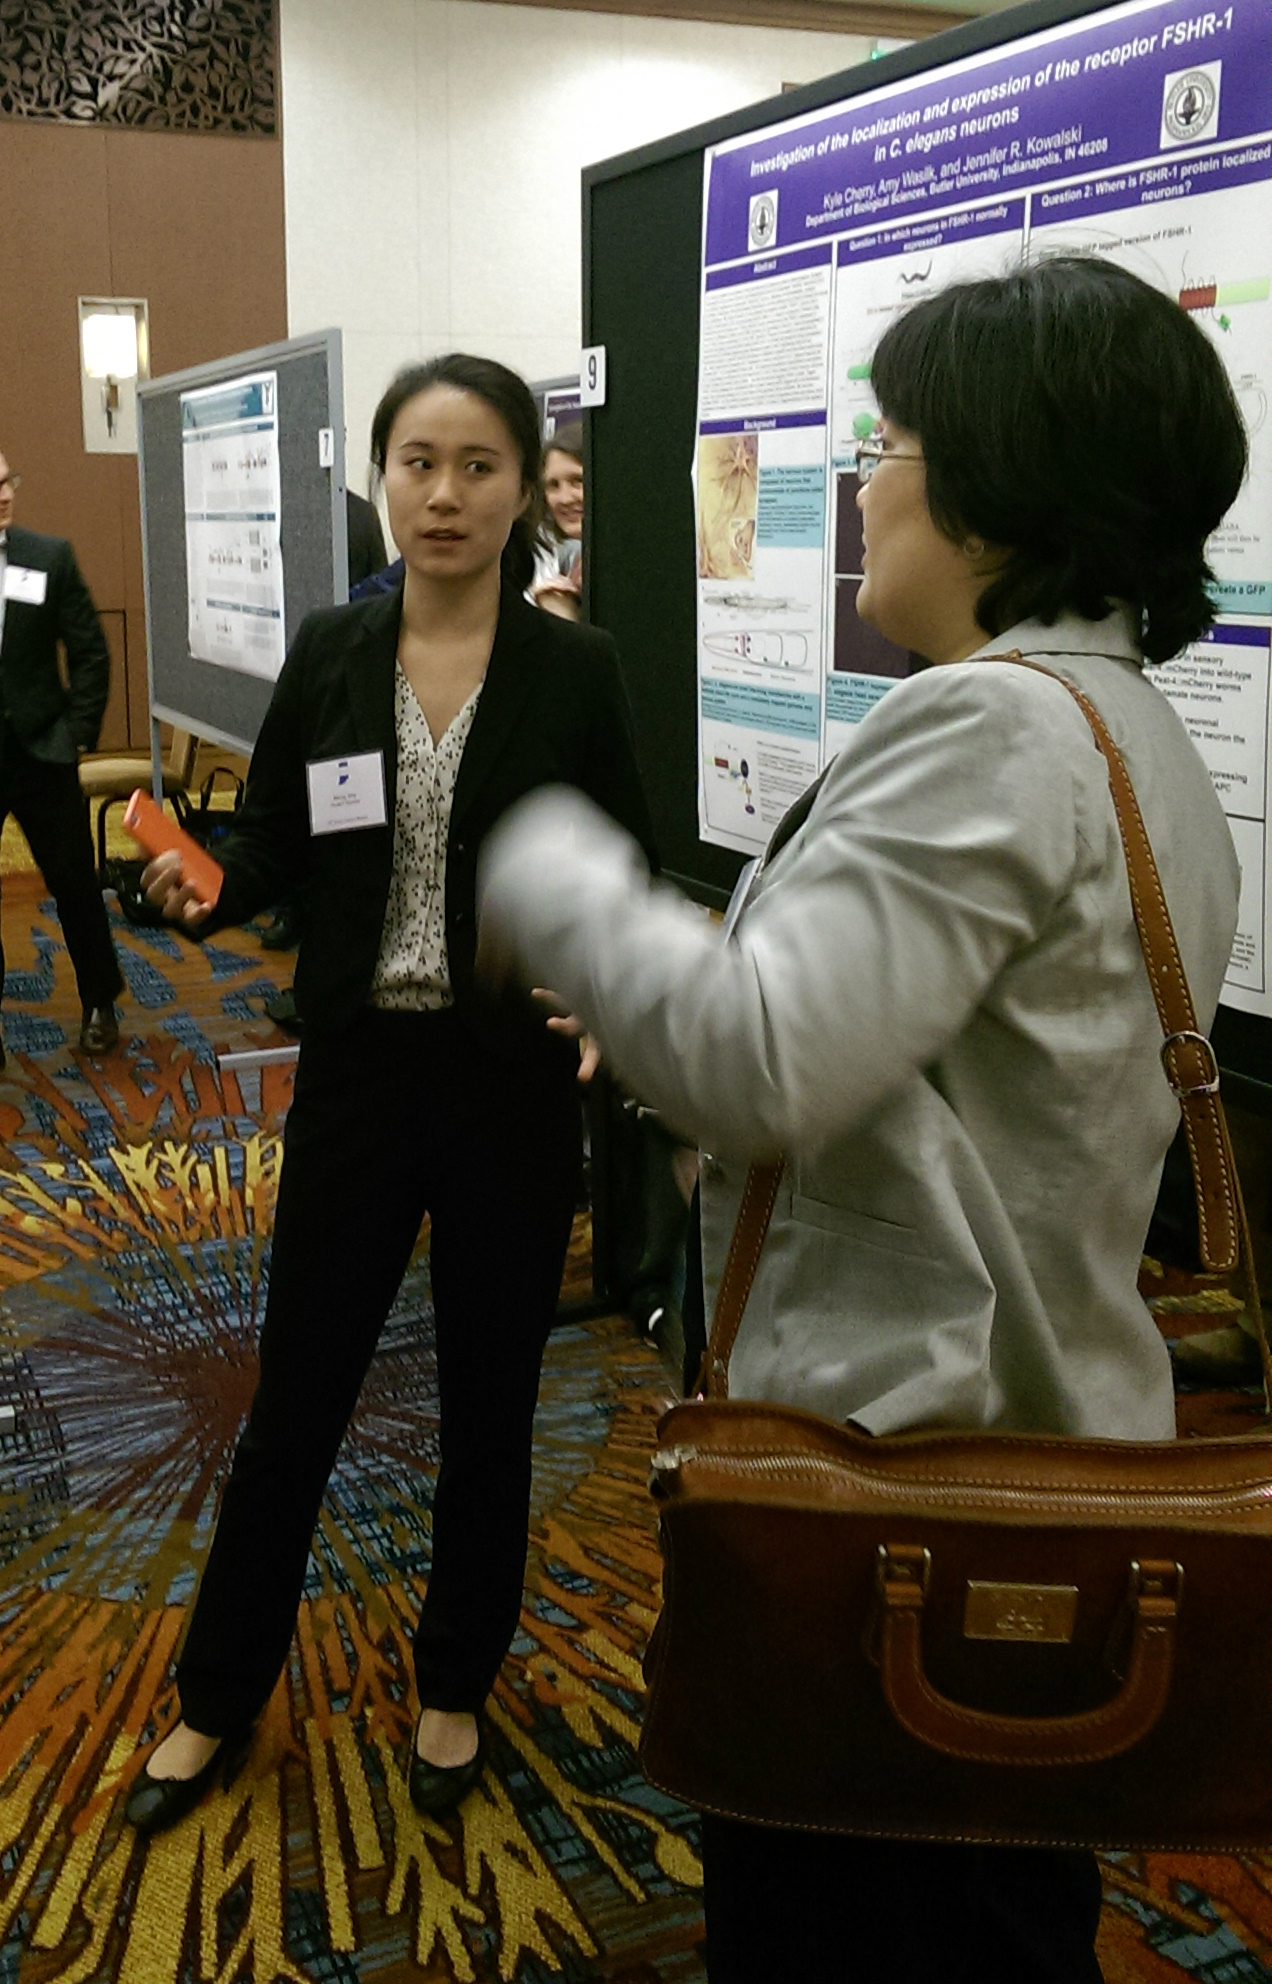 Meng presenting her poster.